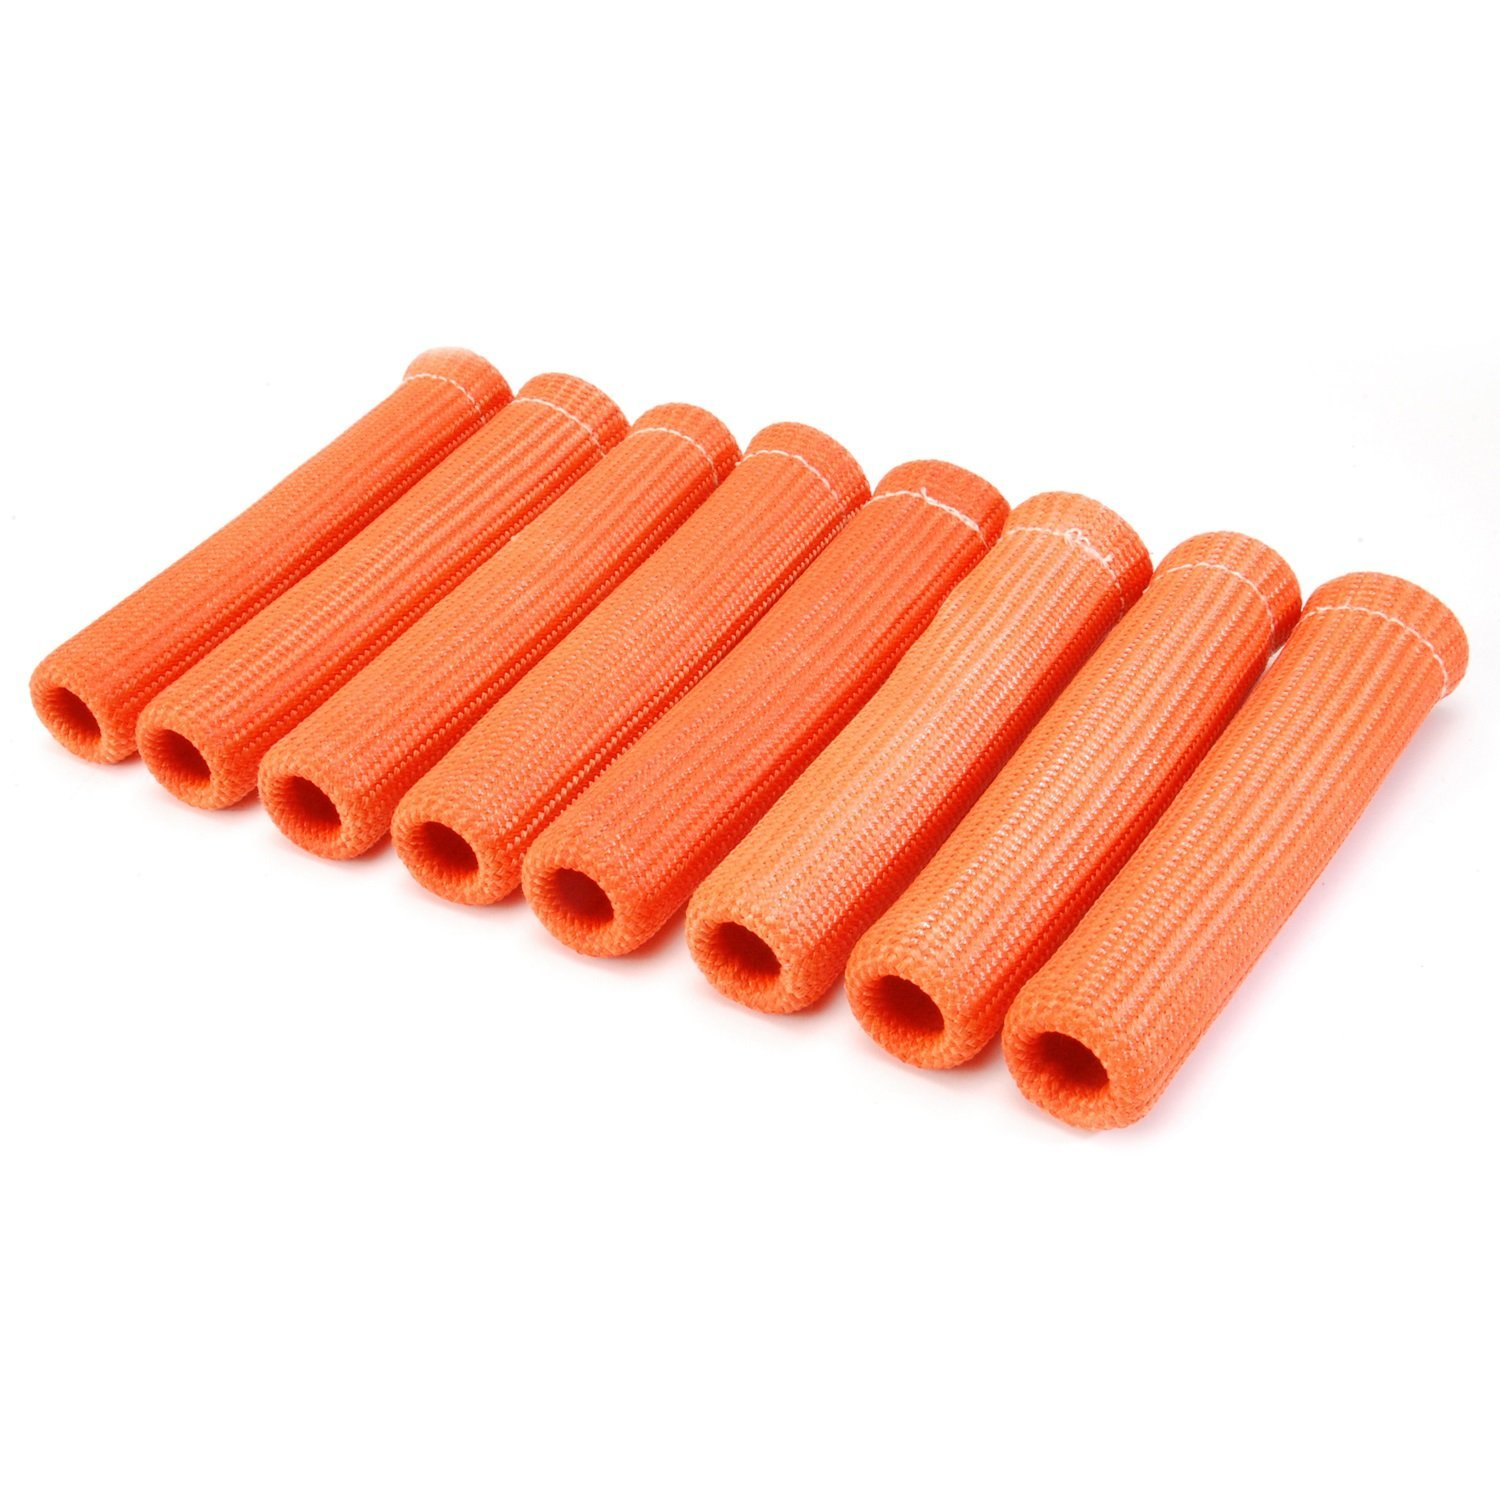 DEI 010572 Protect-A-Boots Spark Plug Boot Protector Sleeves, 8'' - Orange (Pack of 8)